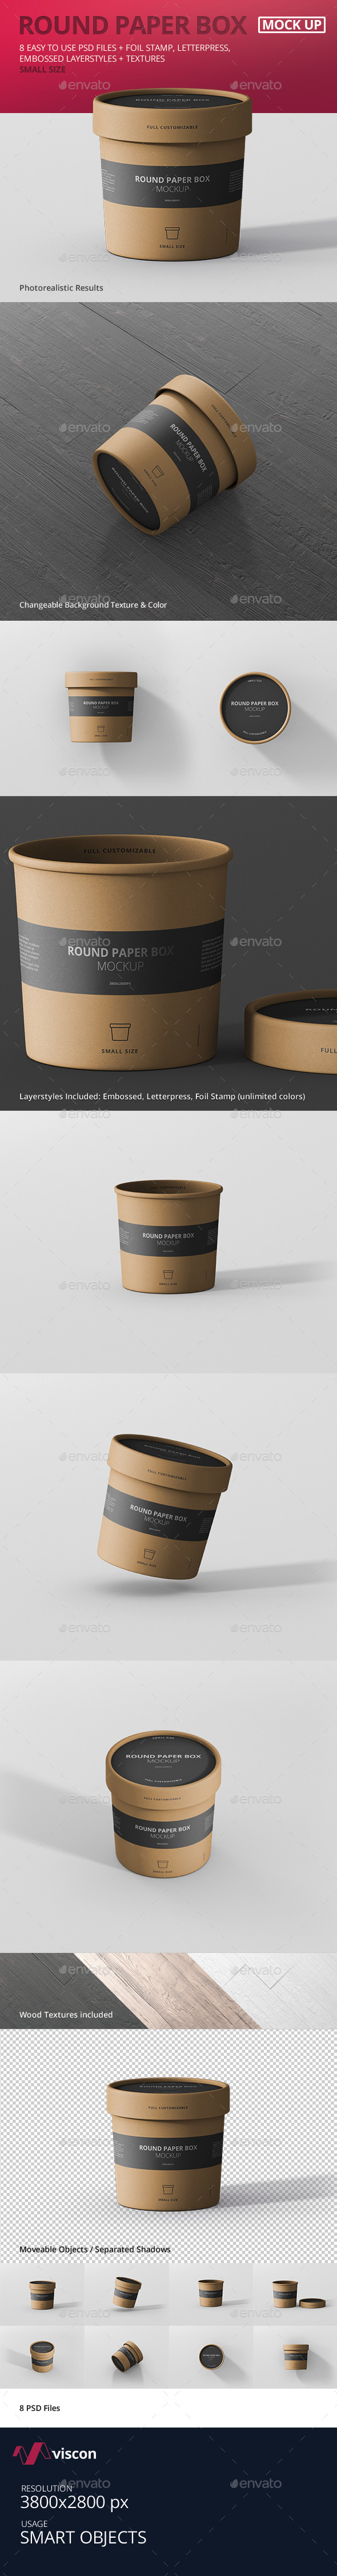 Paper Box Mockup Round - Small Size - Food and Drink Packaging